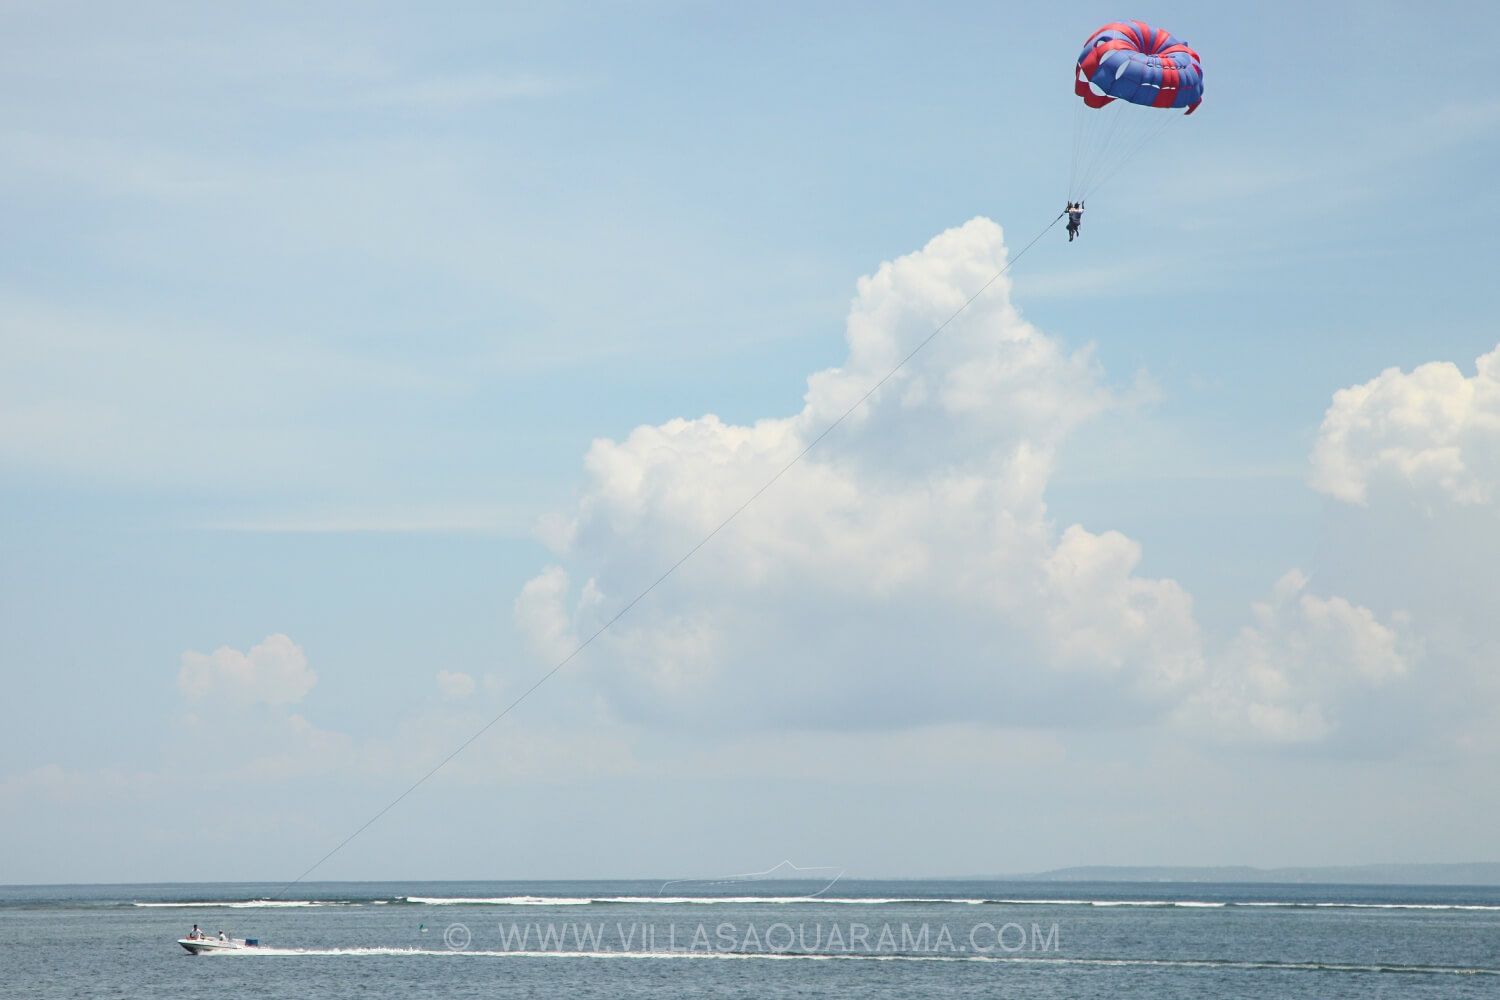 activity-bali-family-parascending-boat-watersport-villas-aquarama-rent